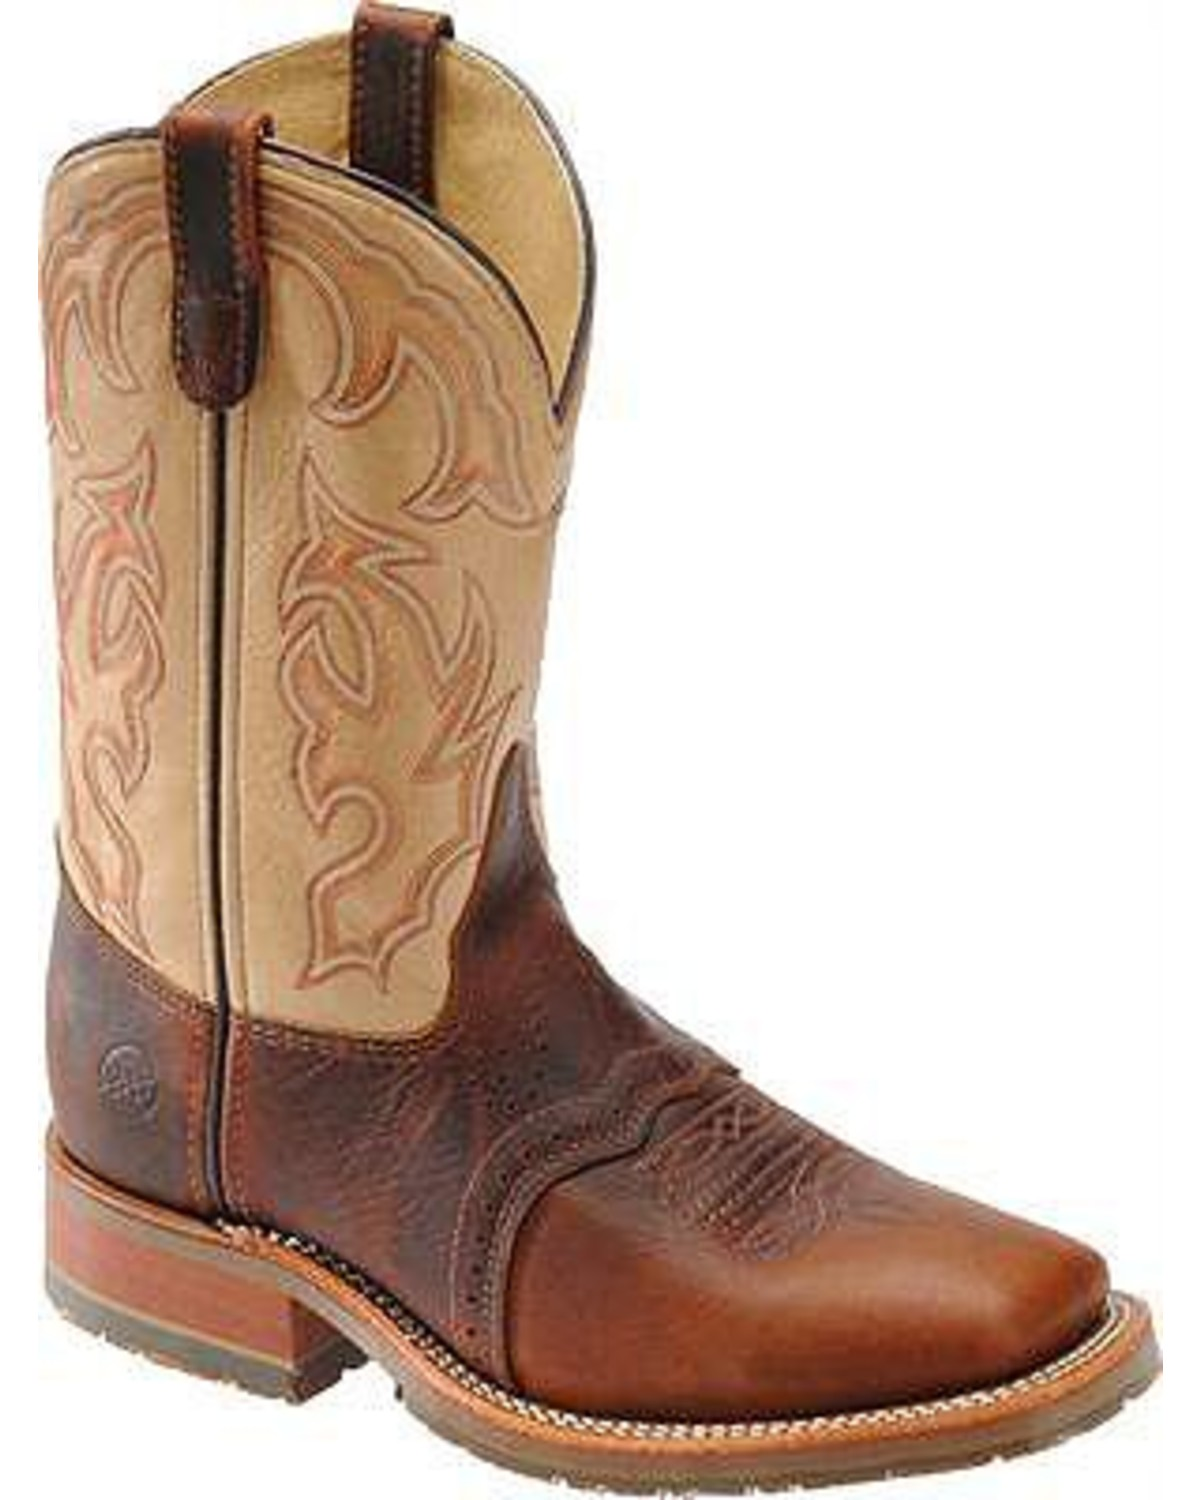 Double-H Men's Western Boots | Boot Barn